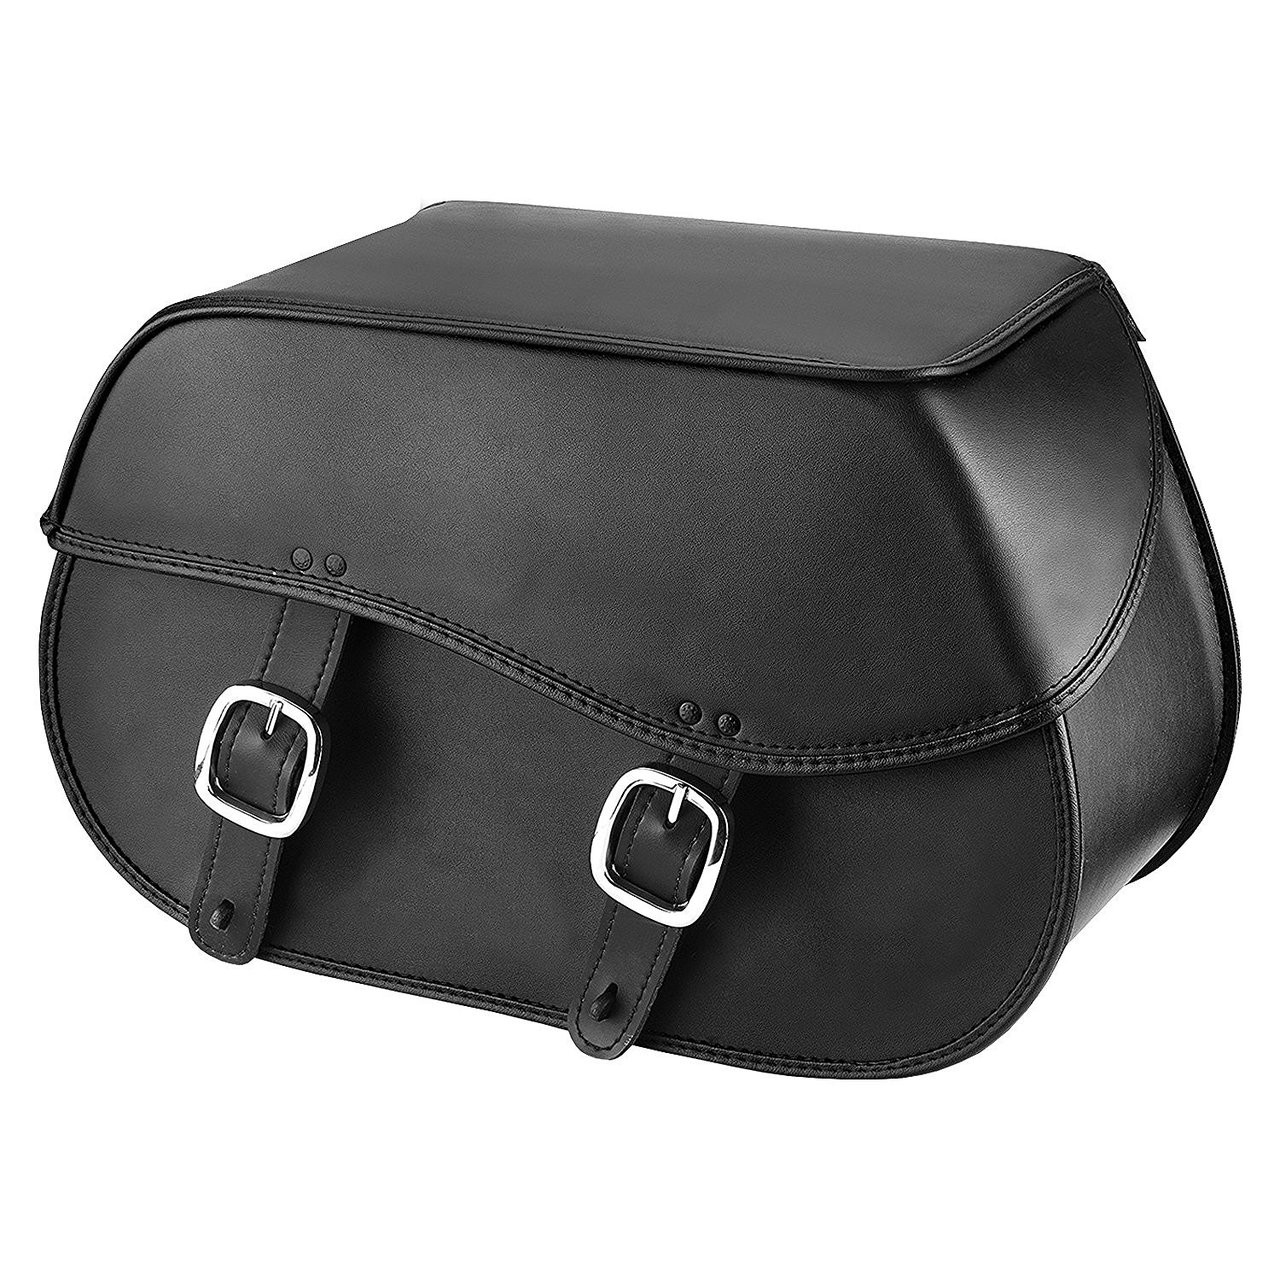 Nomad usa large leather throw over motorcycle saddlebags for Motor cycle saddle bags